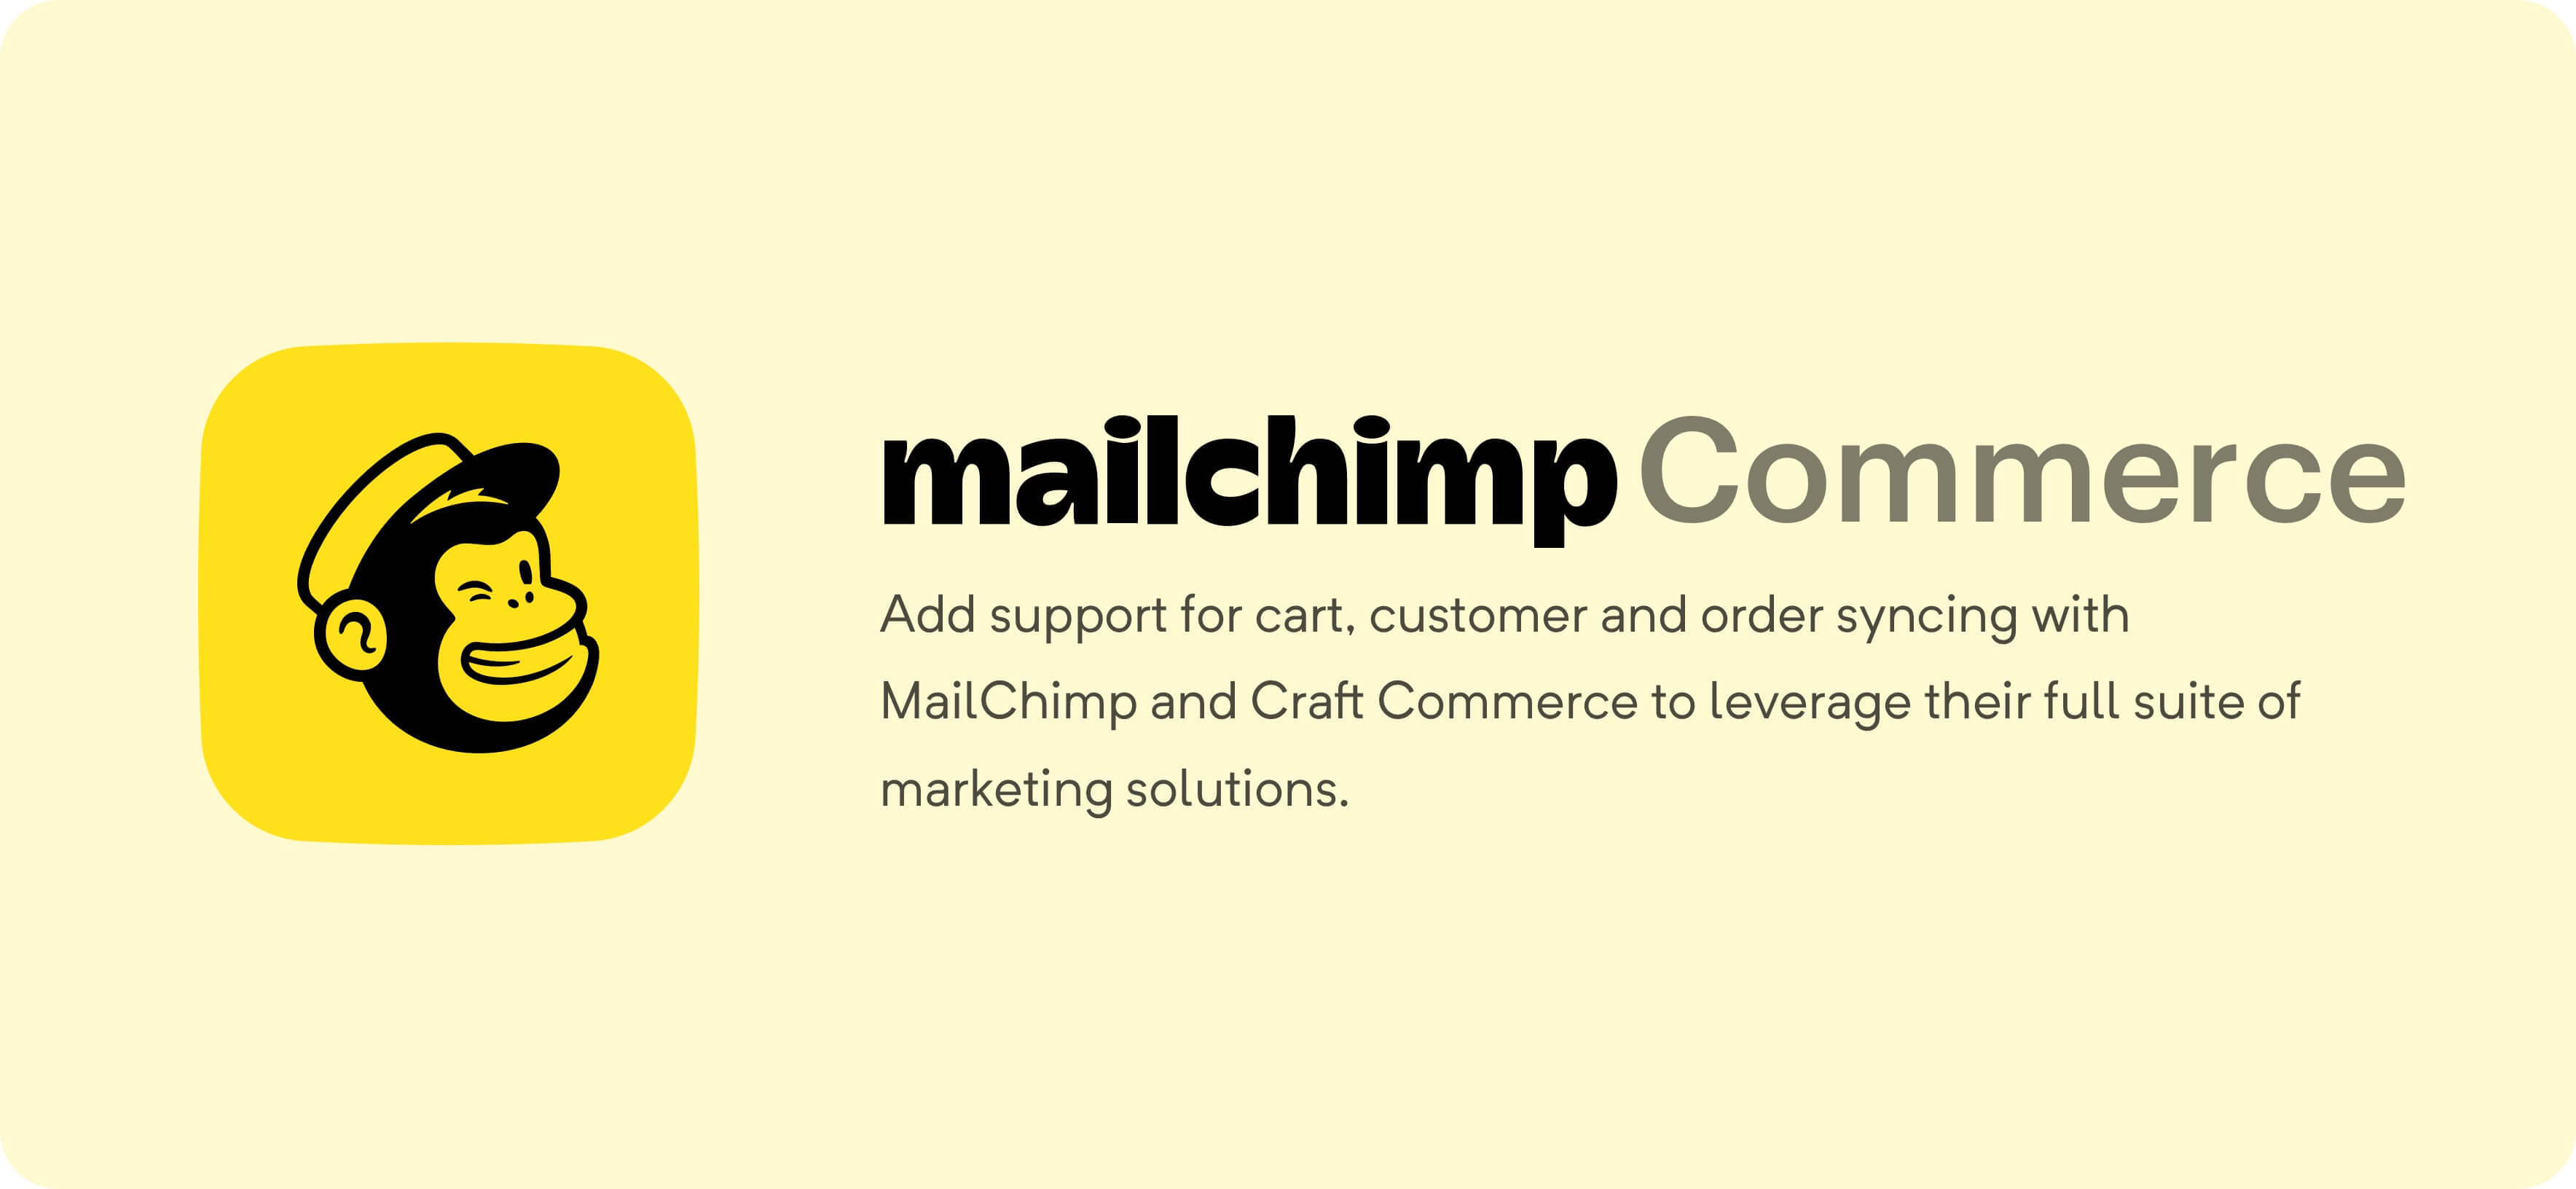 how to upload a document to mail chimp